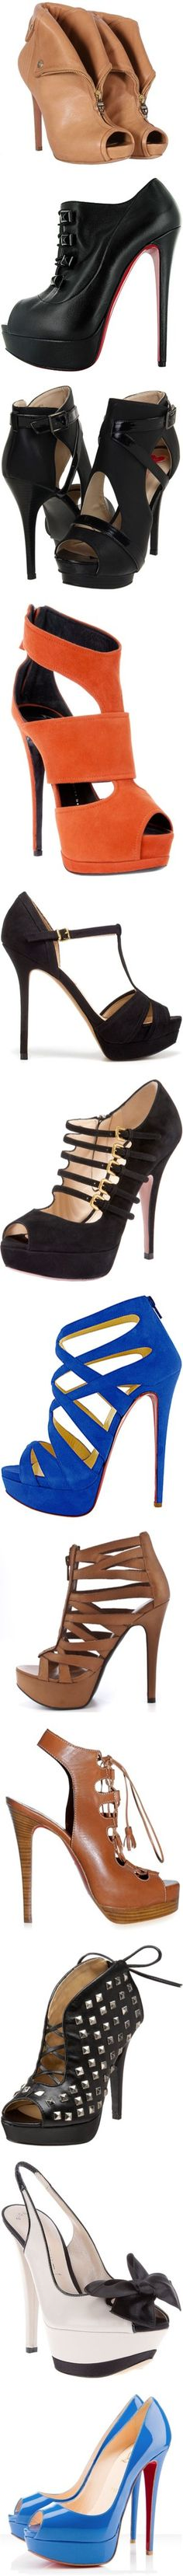 """""""COMI: Footwear #5"""" by sarratori ❤ liked on Polyvore"""